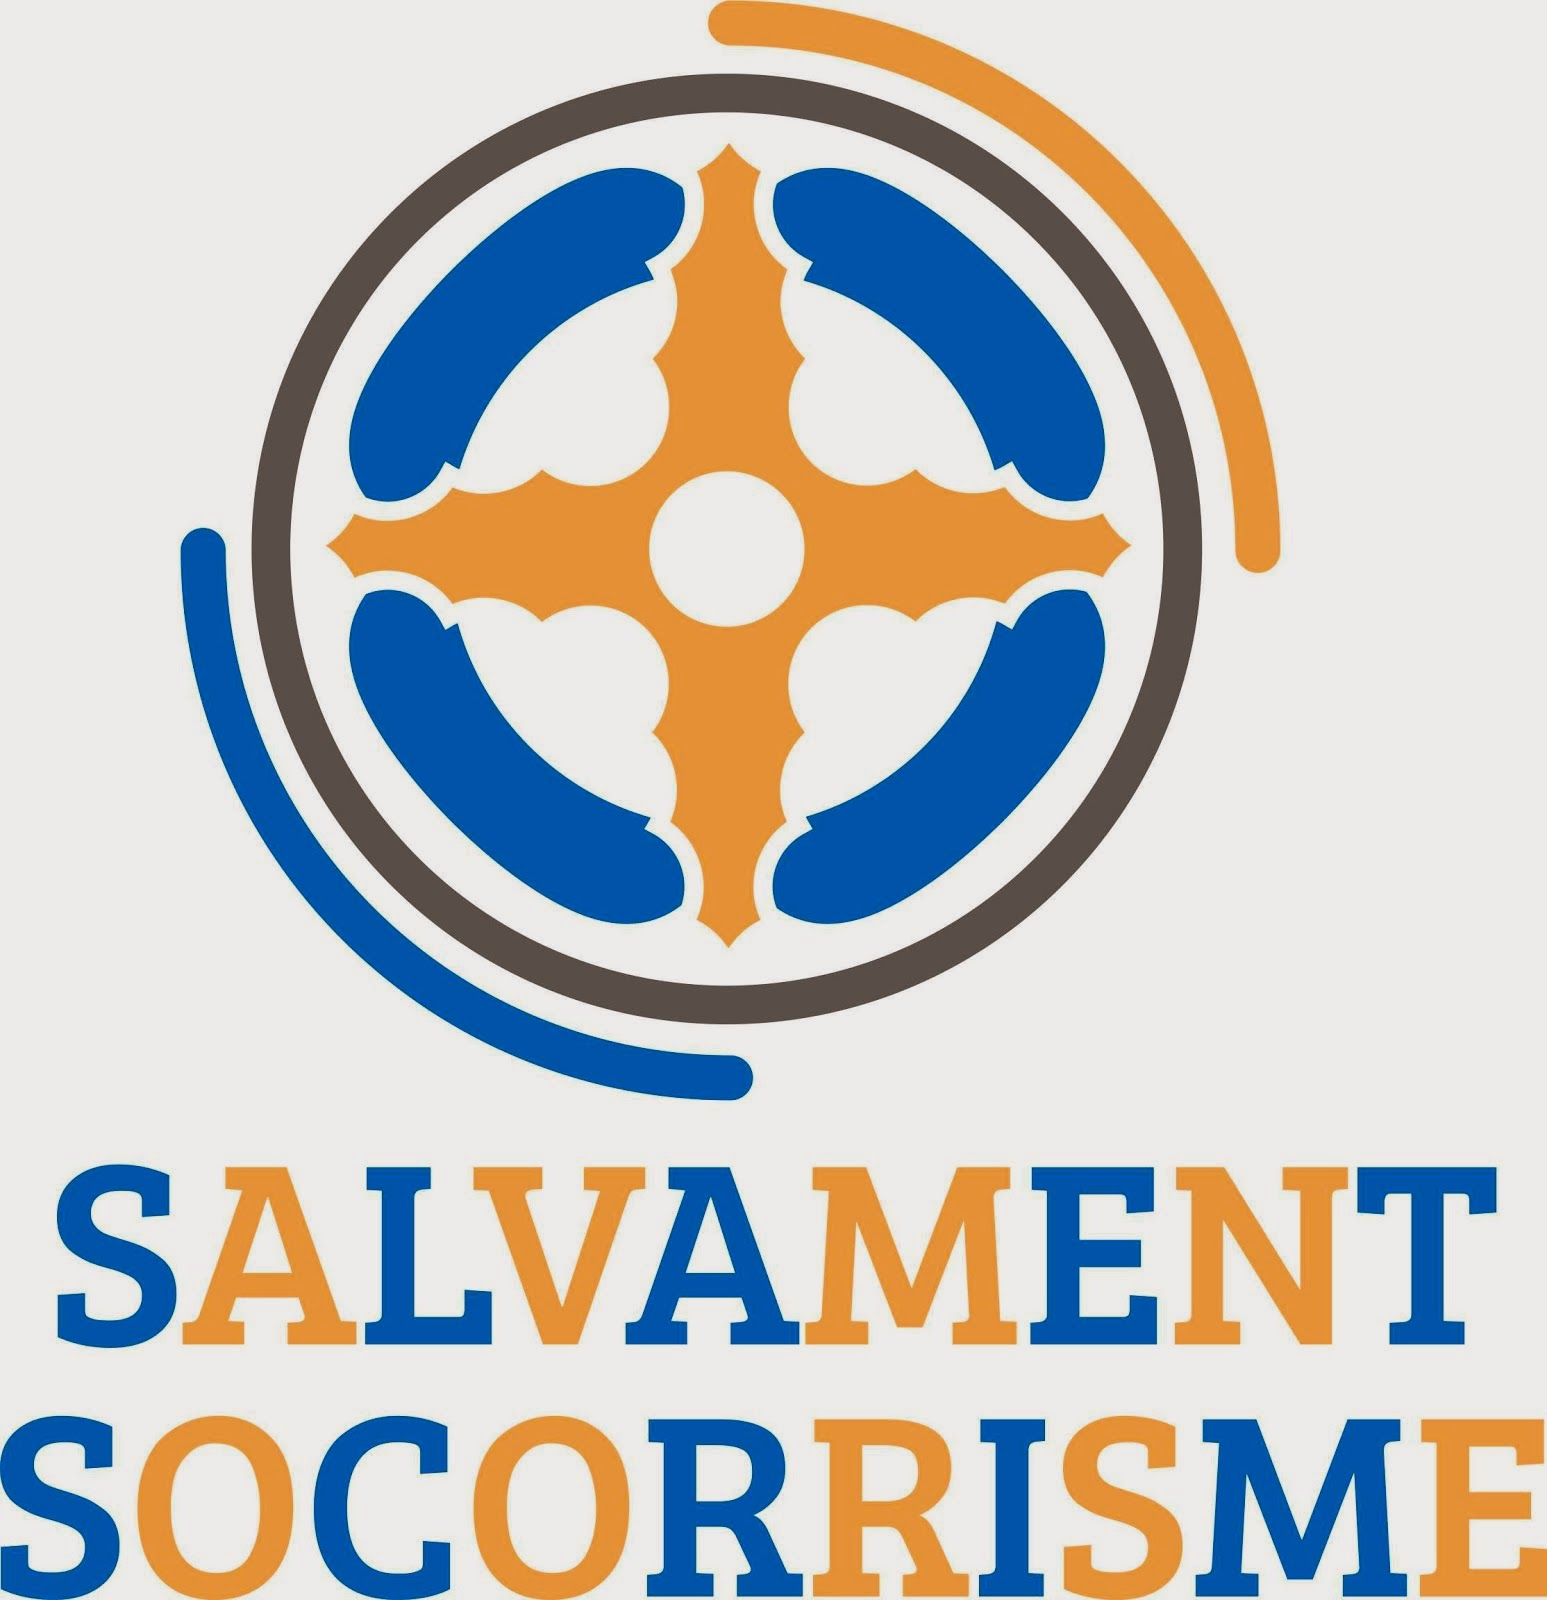 Salvament i socorrisme